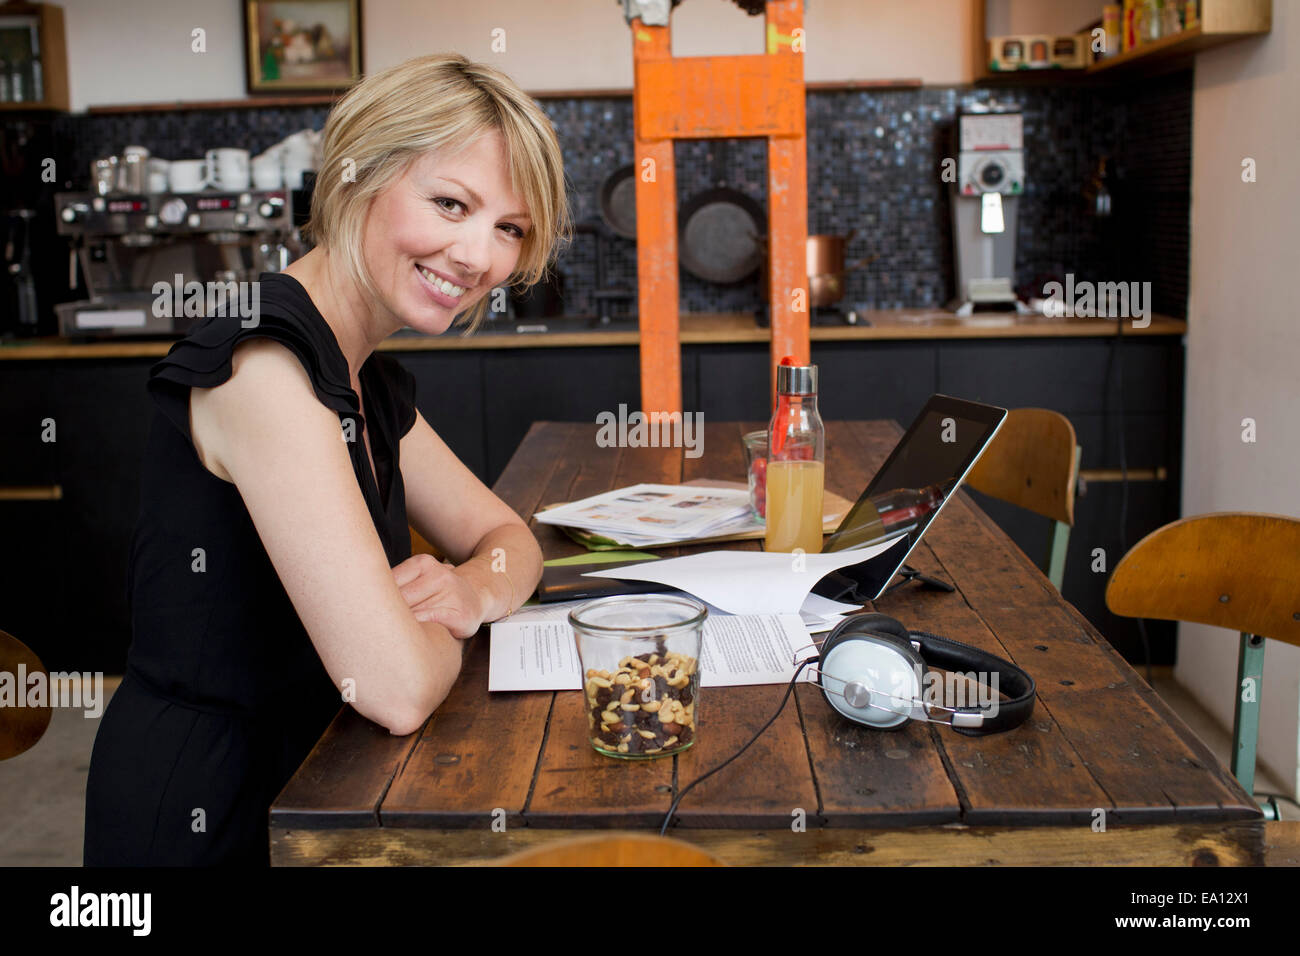 Mid adult woman in cafe with paperwork Photo Stock